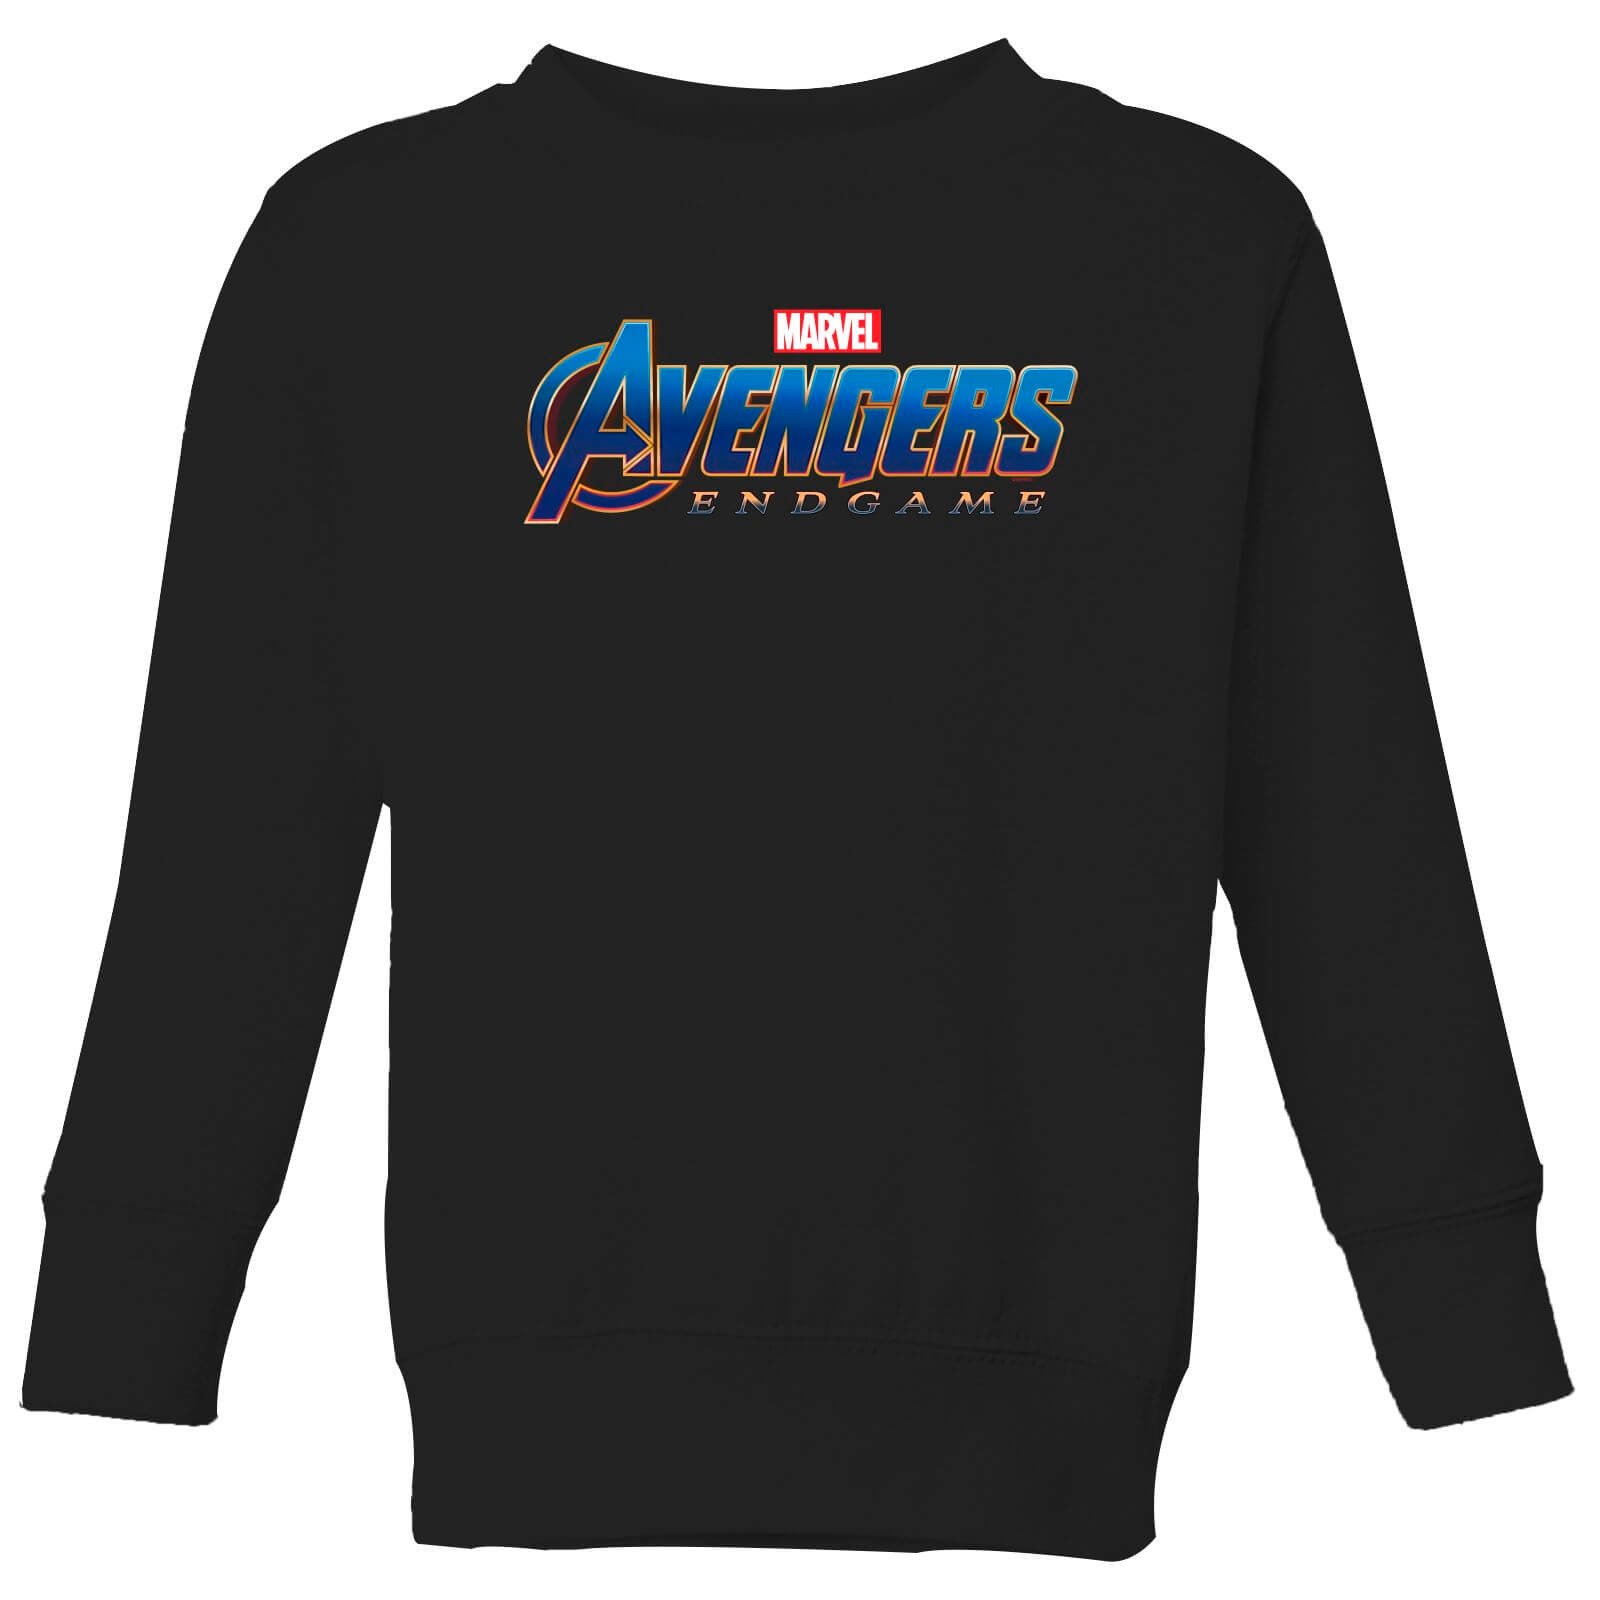 Avengers Endgame Logo Kids' Sweatshirt - Black - 5-6 Years - Black